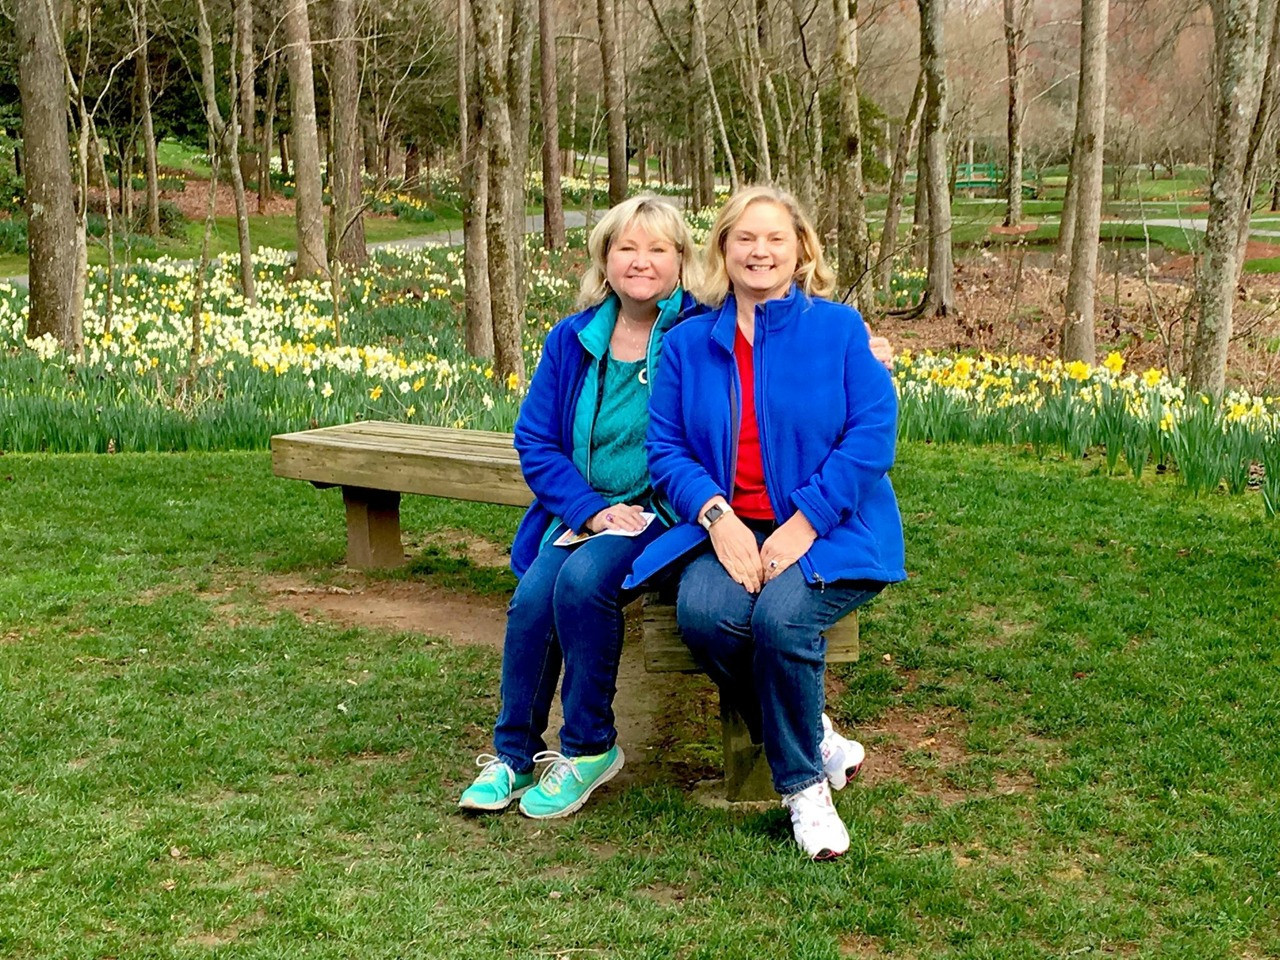 Best friend Joan and Debra visit Gibbs Gardens